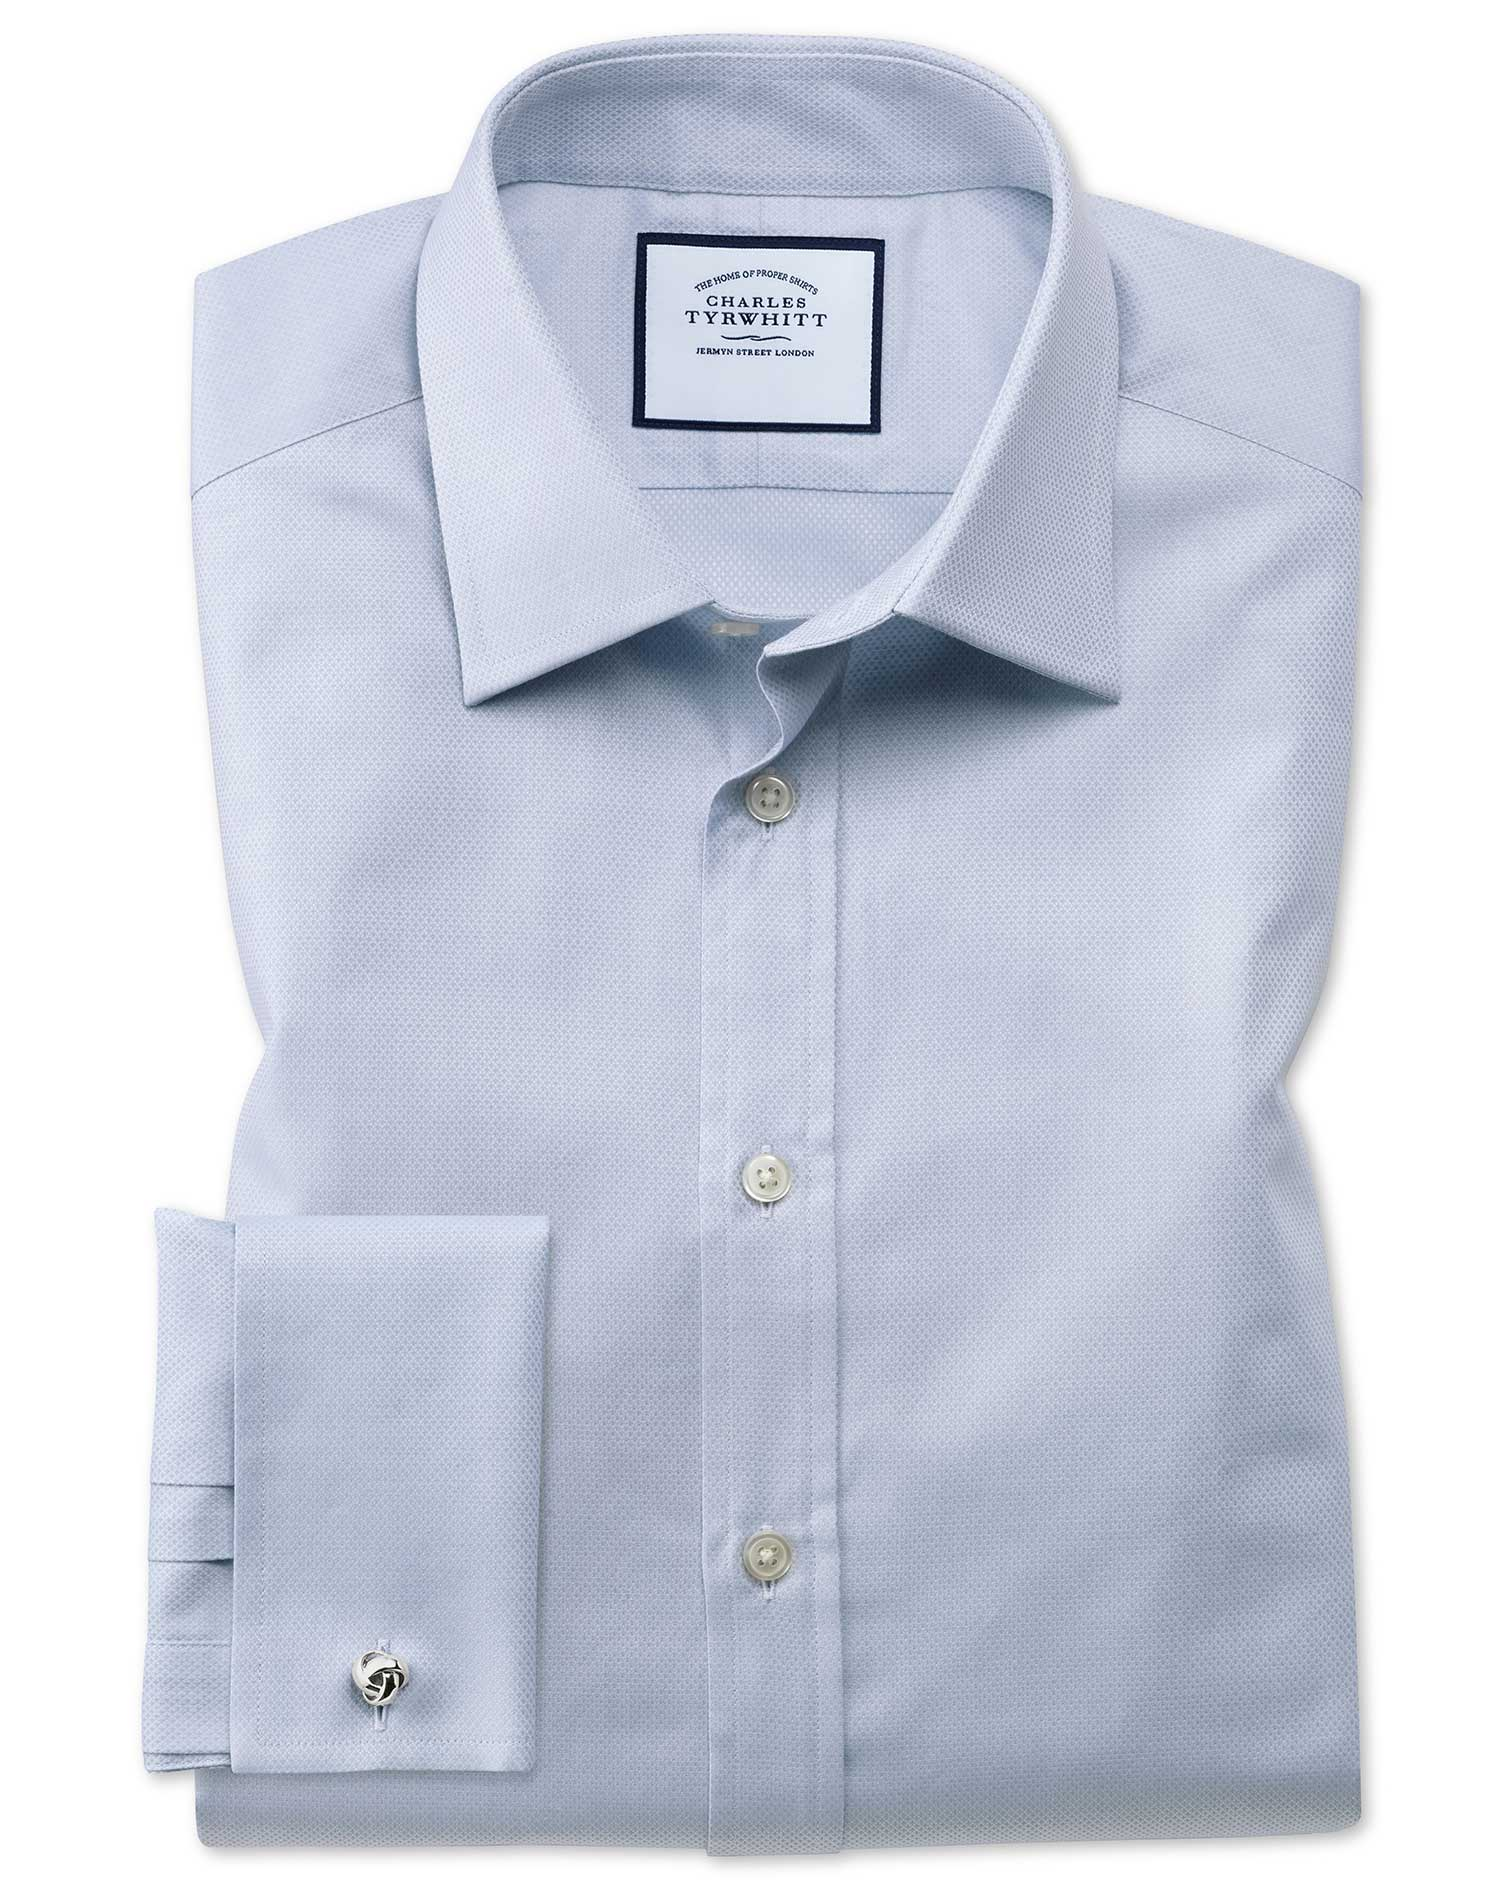 Classic Fit Egyptian Cotton Trellis Weave Grey Formal Shirt Double Cuff Size 15.5/34 by Charles Tyrw